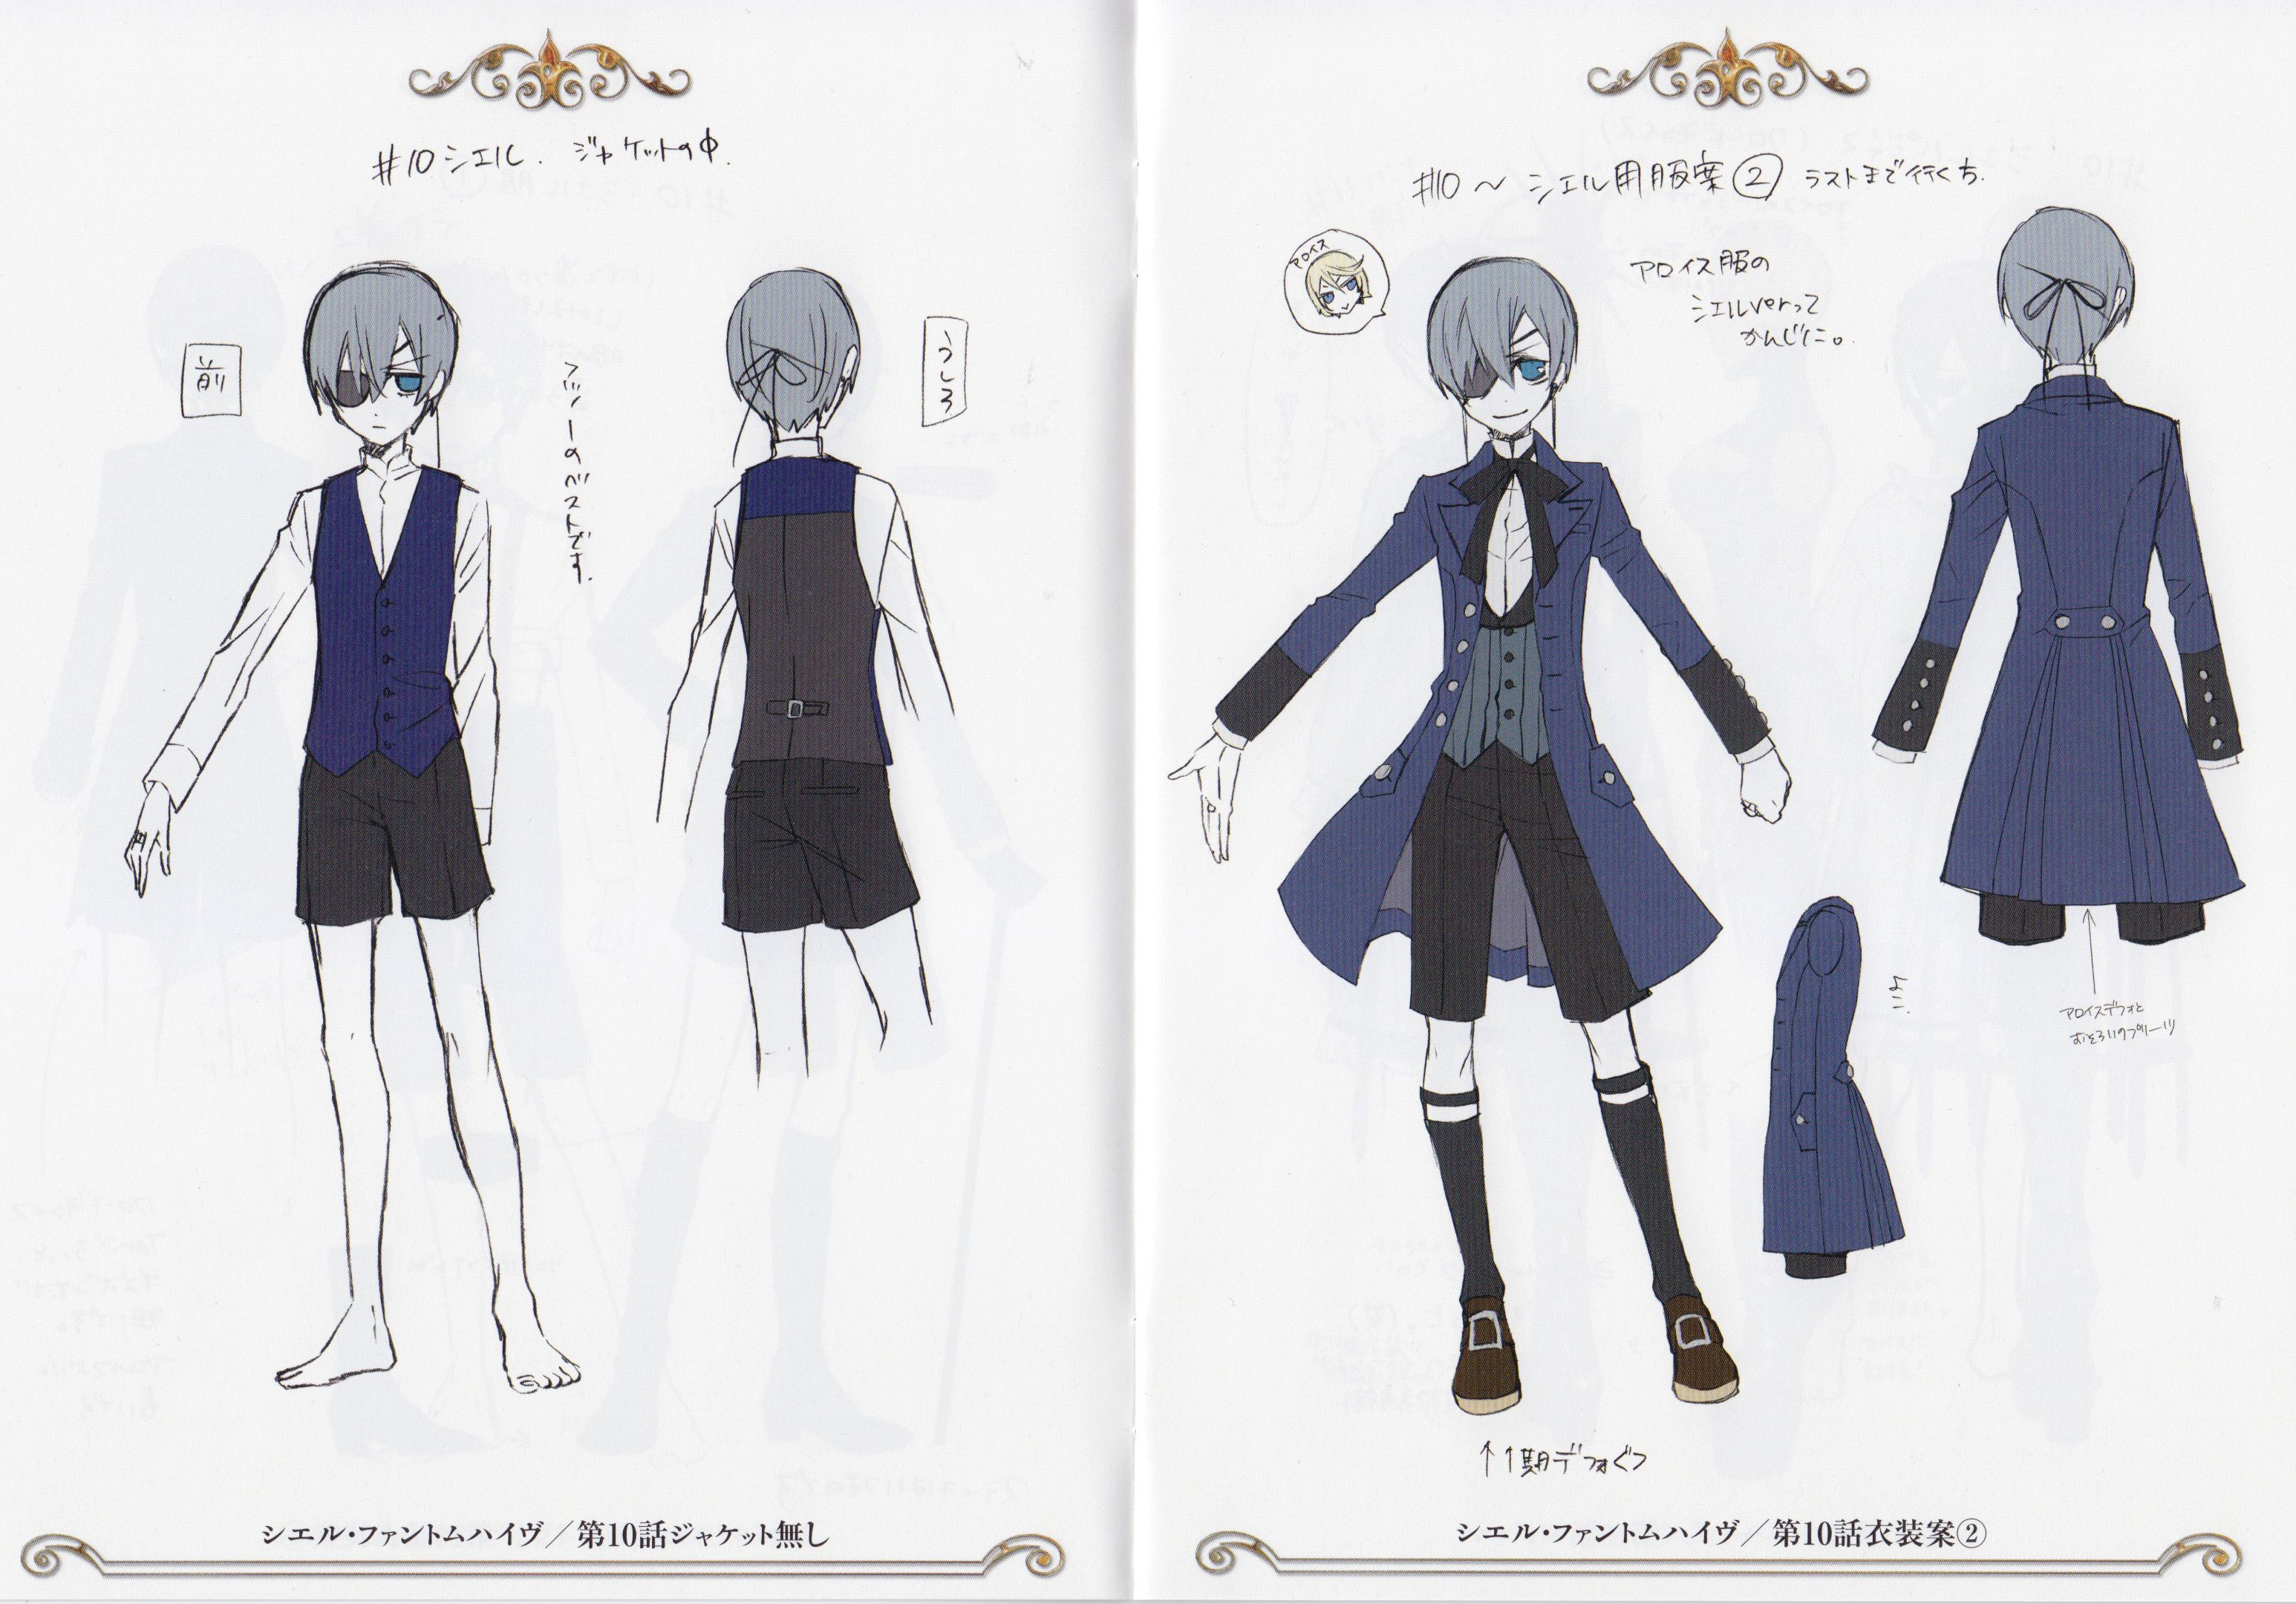 Definition Of Character Design : Ciel phantomhive underclothing alois blue outfit